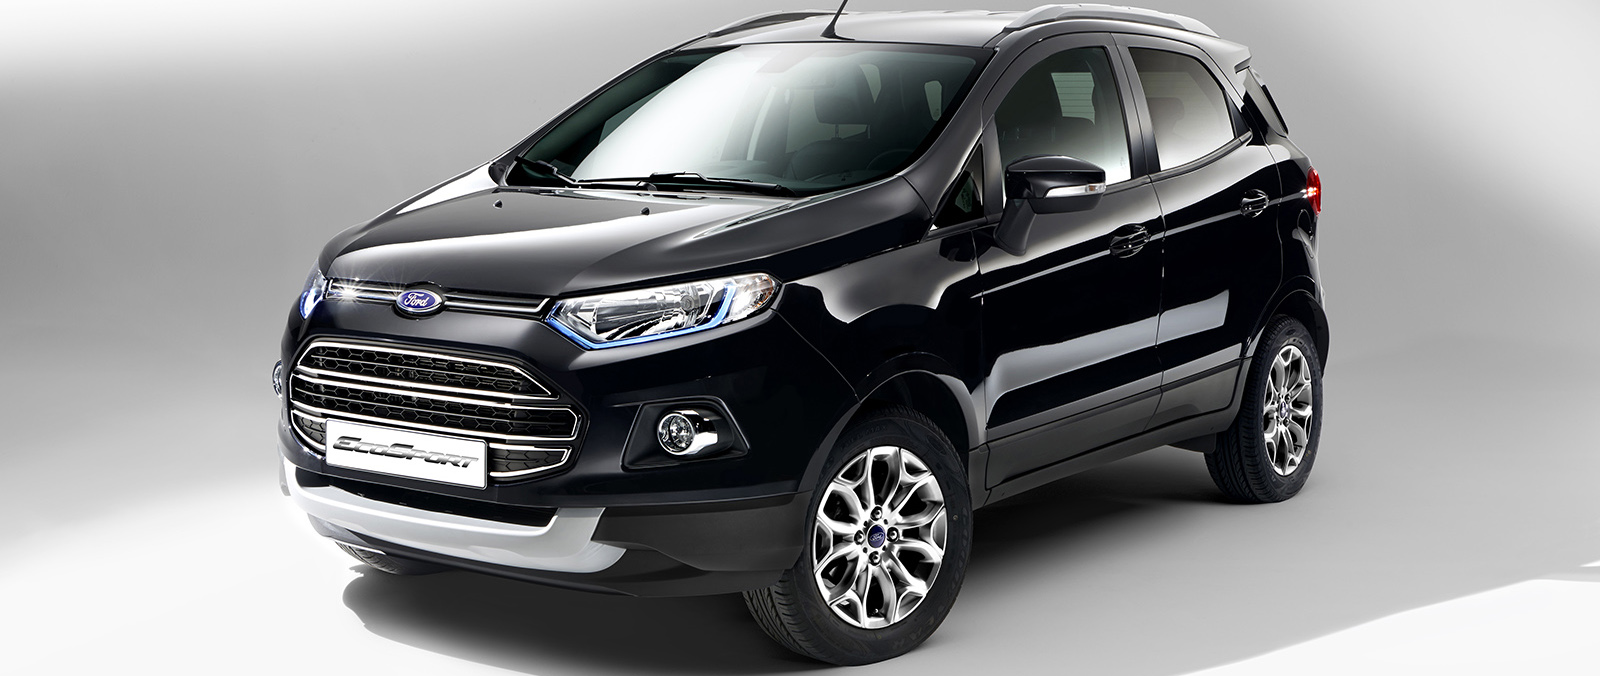 nieuwe ford edge en verbeterde kuga en ecosport ford. Black Bedroom Furniture Sets. Home Design Ideas